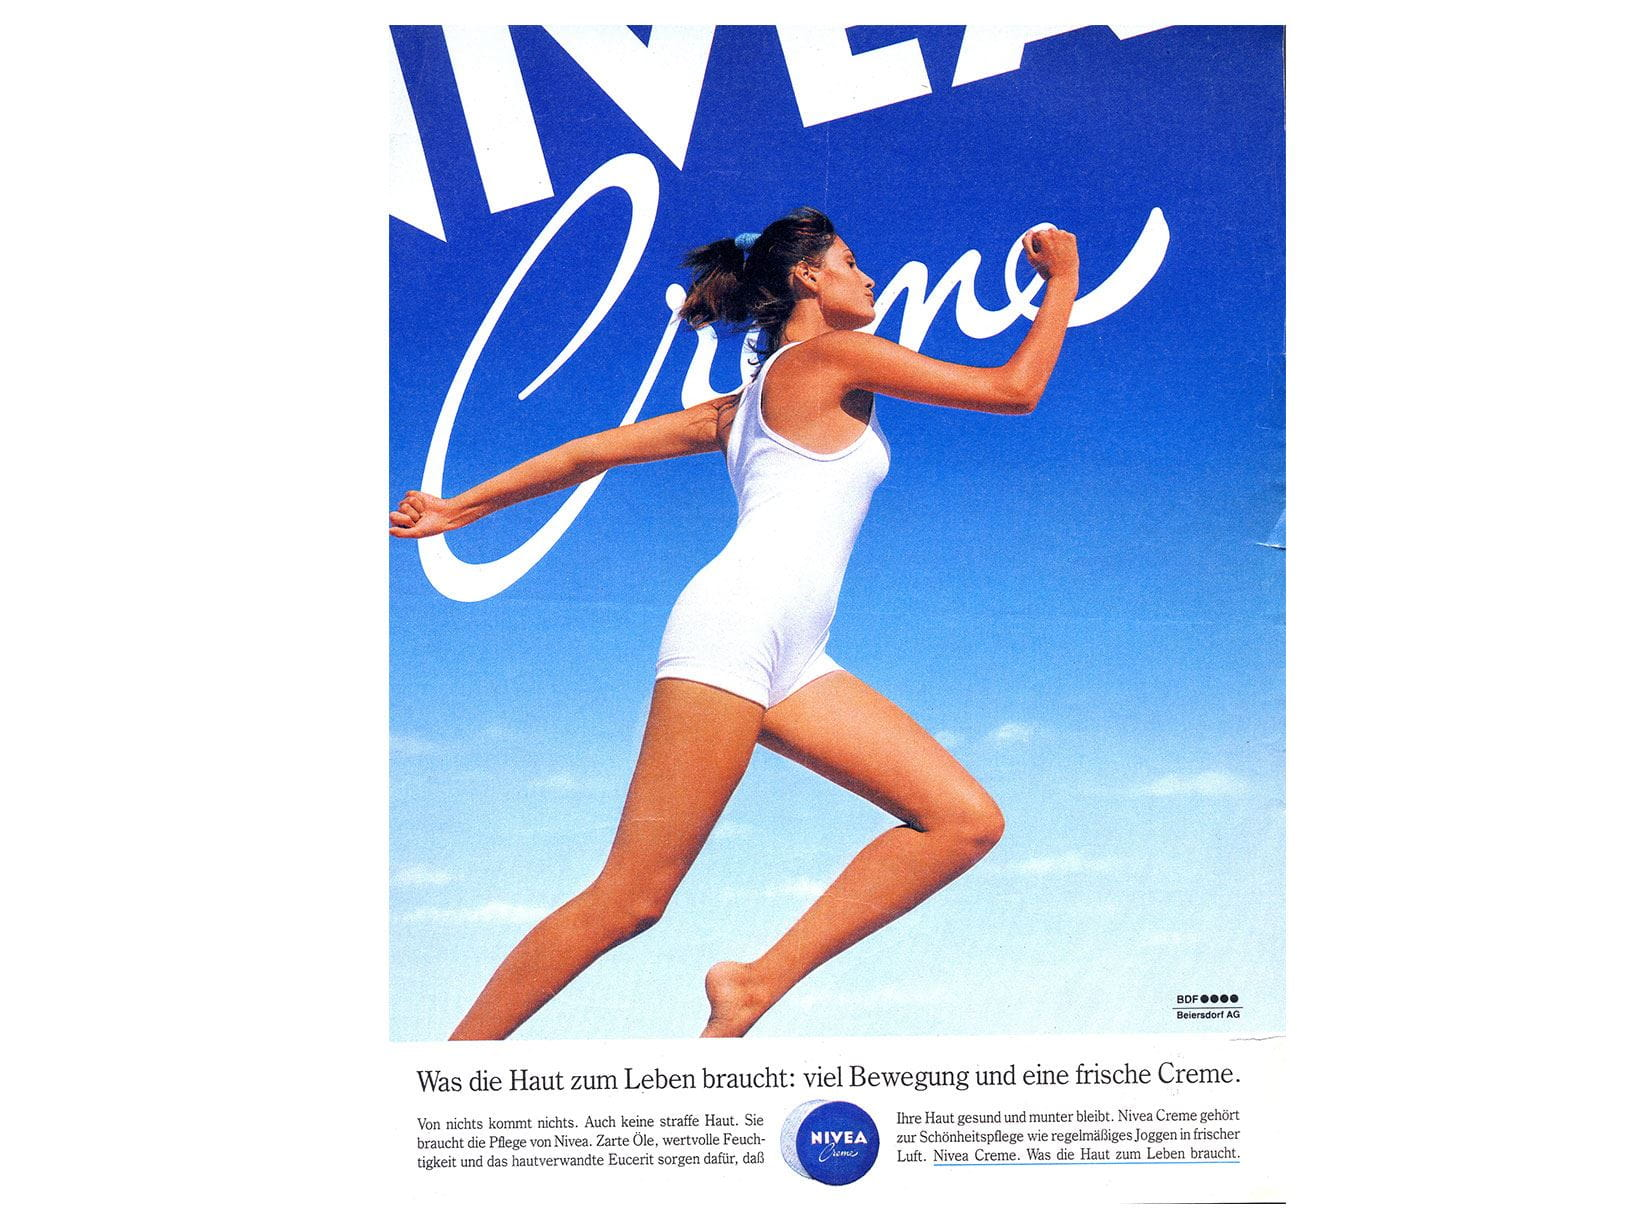 NIVEA Creme advertisement from 1988. What the skin needs for life: plenty of exercise and a fresh Creme.